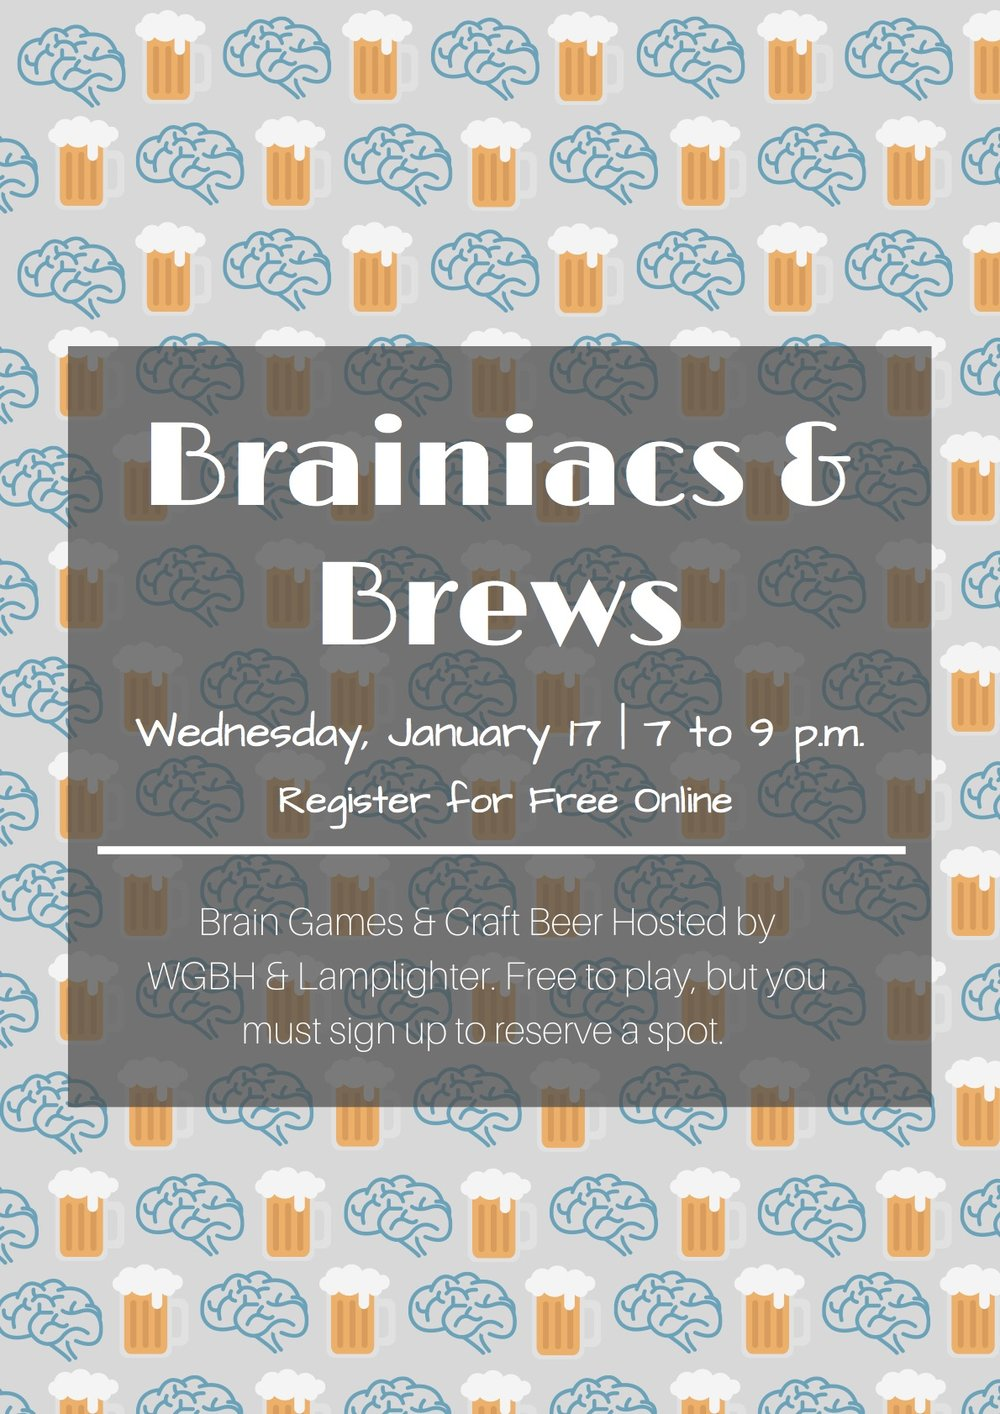 Brainiacs & Brews.jpg